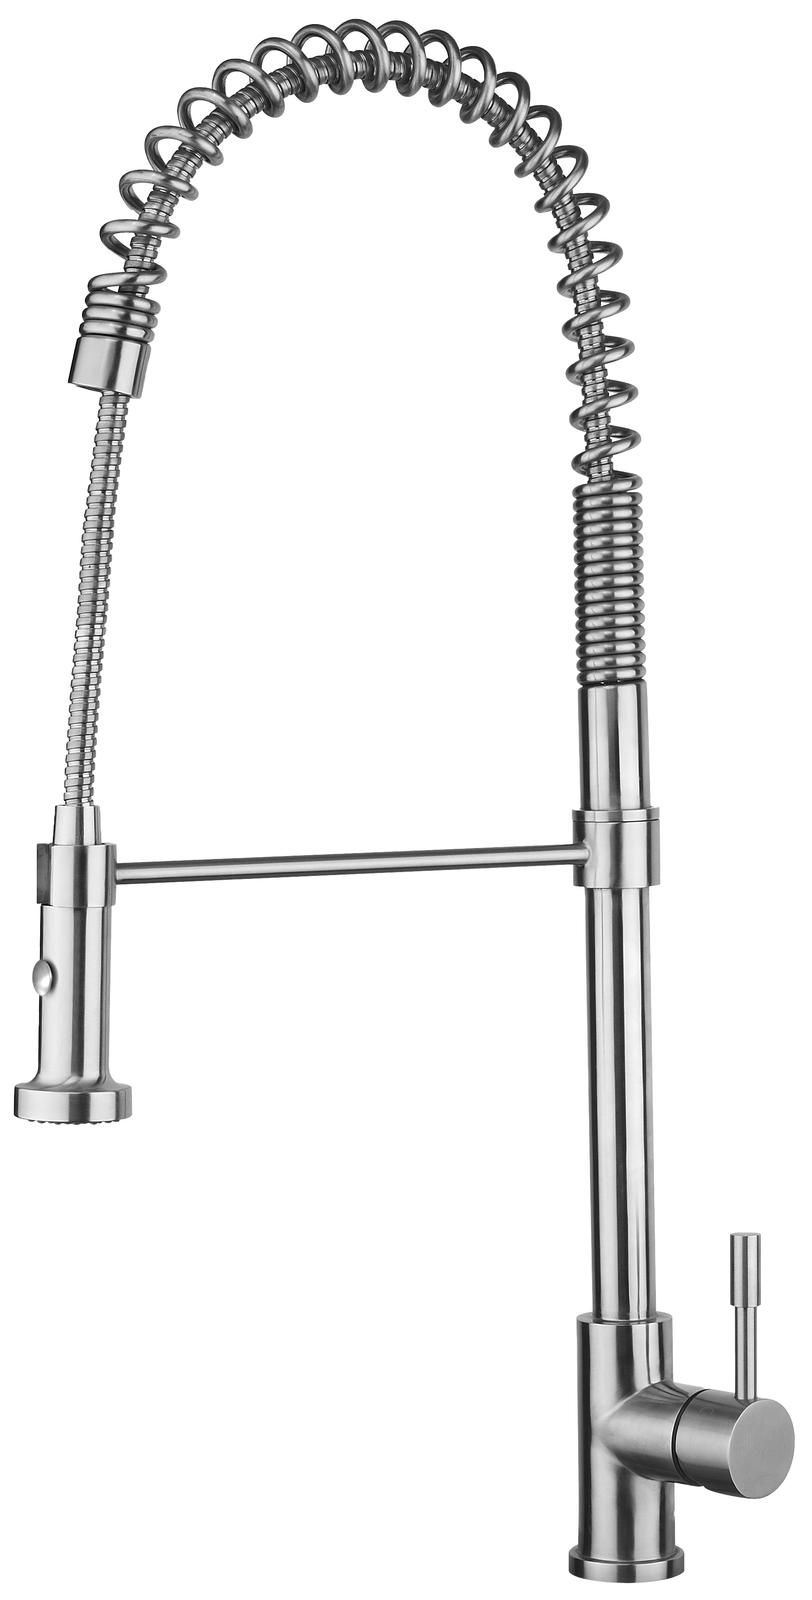 Primary image for Lead Free,Single-Hole Faucet, Spray Head,Swivel Spout Support Bar,Handle